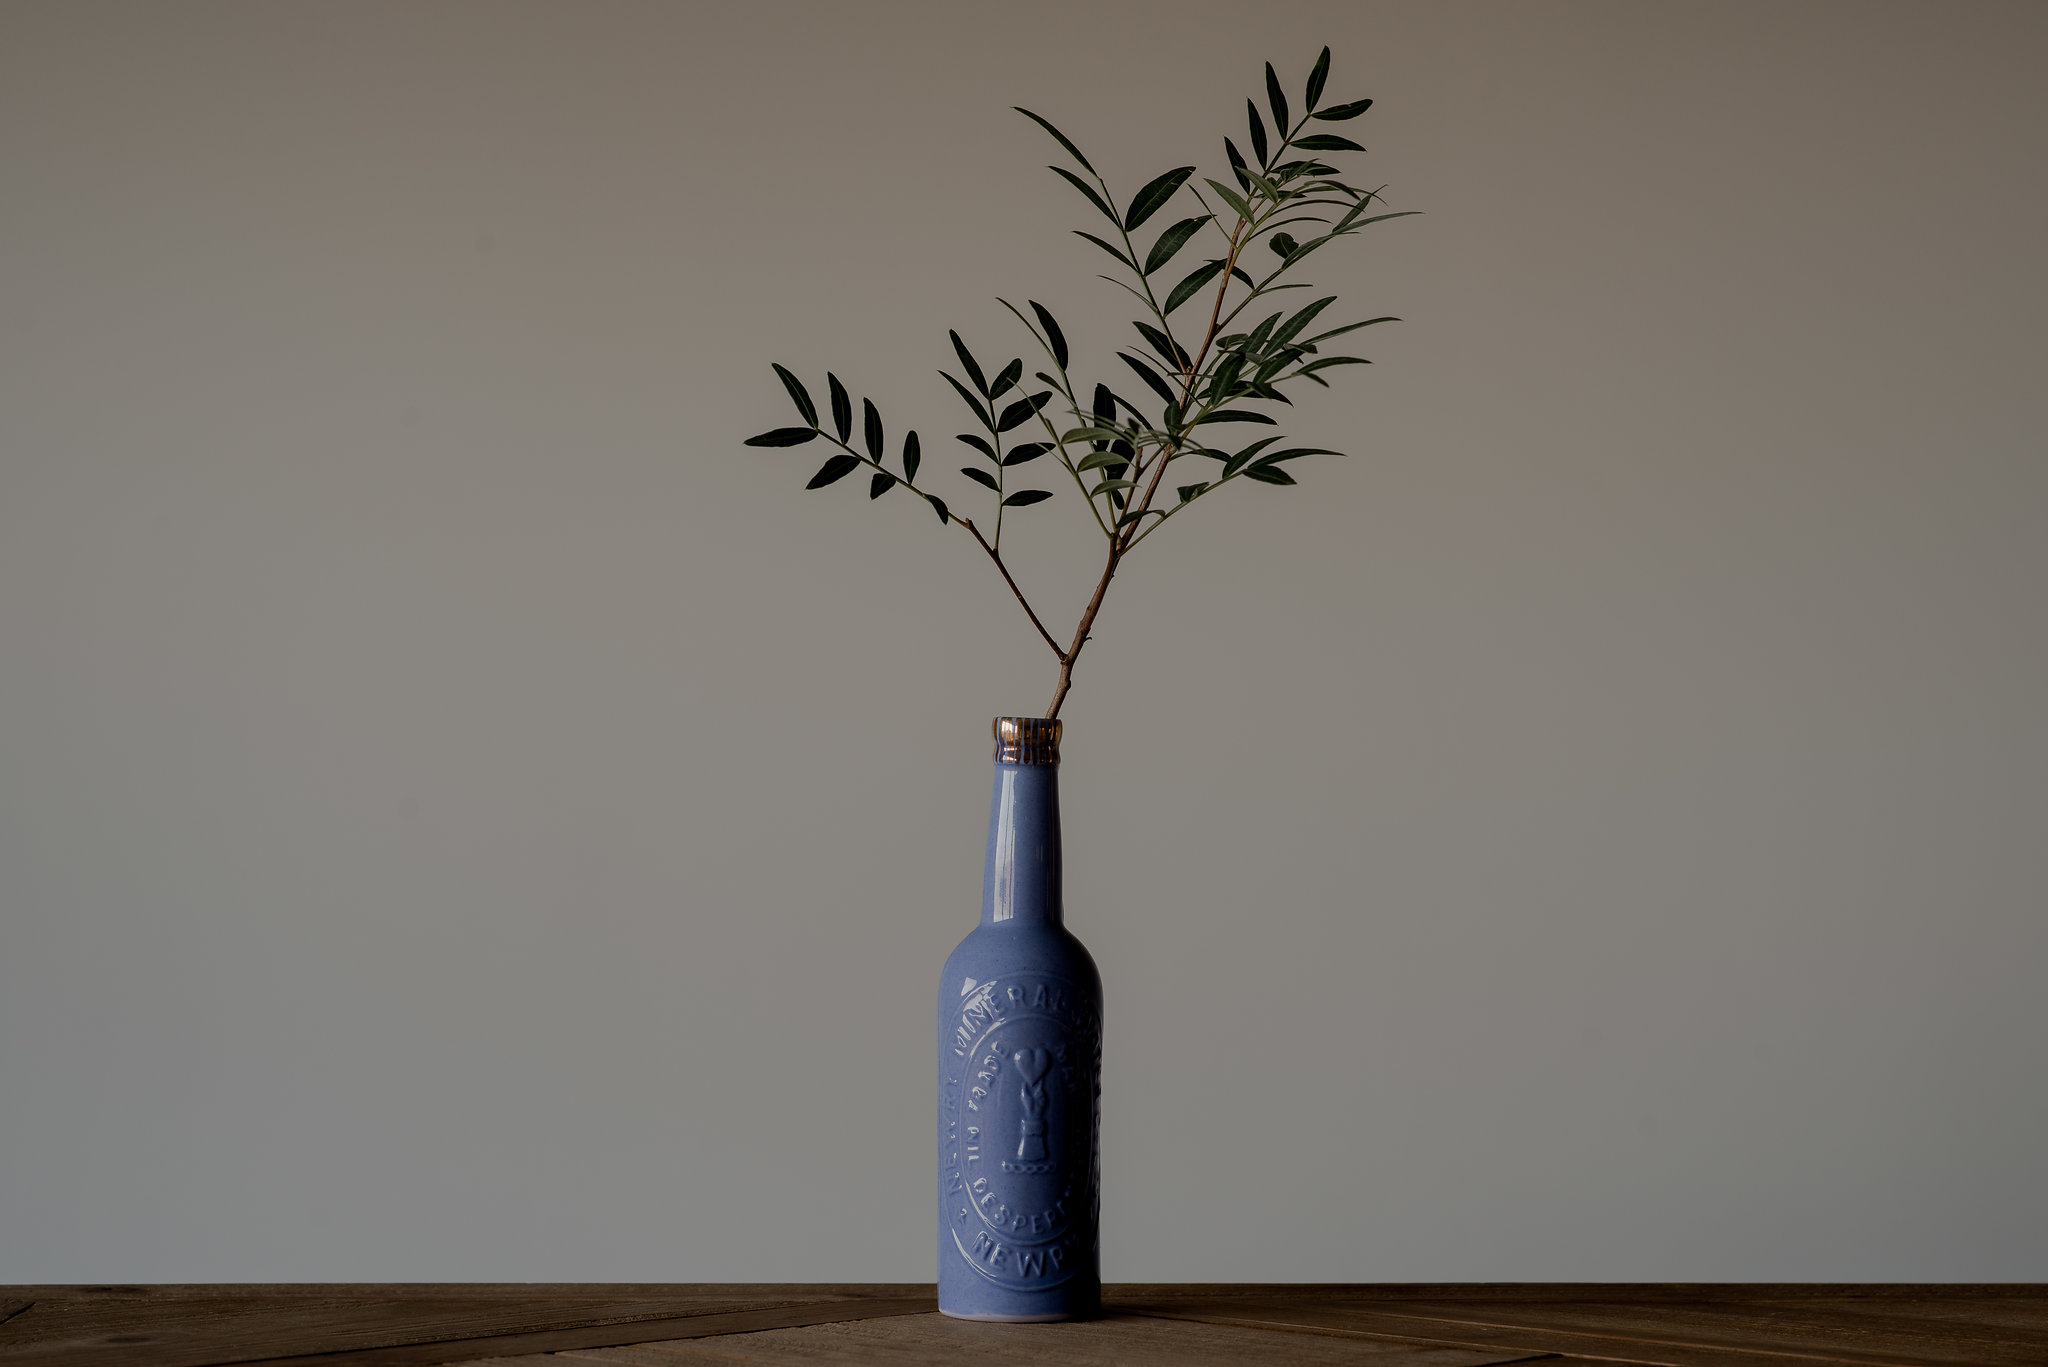 Wondering how to style the Homegrown collection? Single stem minimalism, let the Newry bottle do the talking.